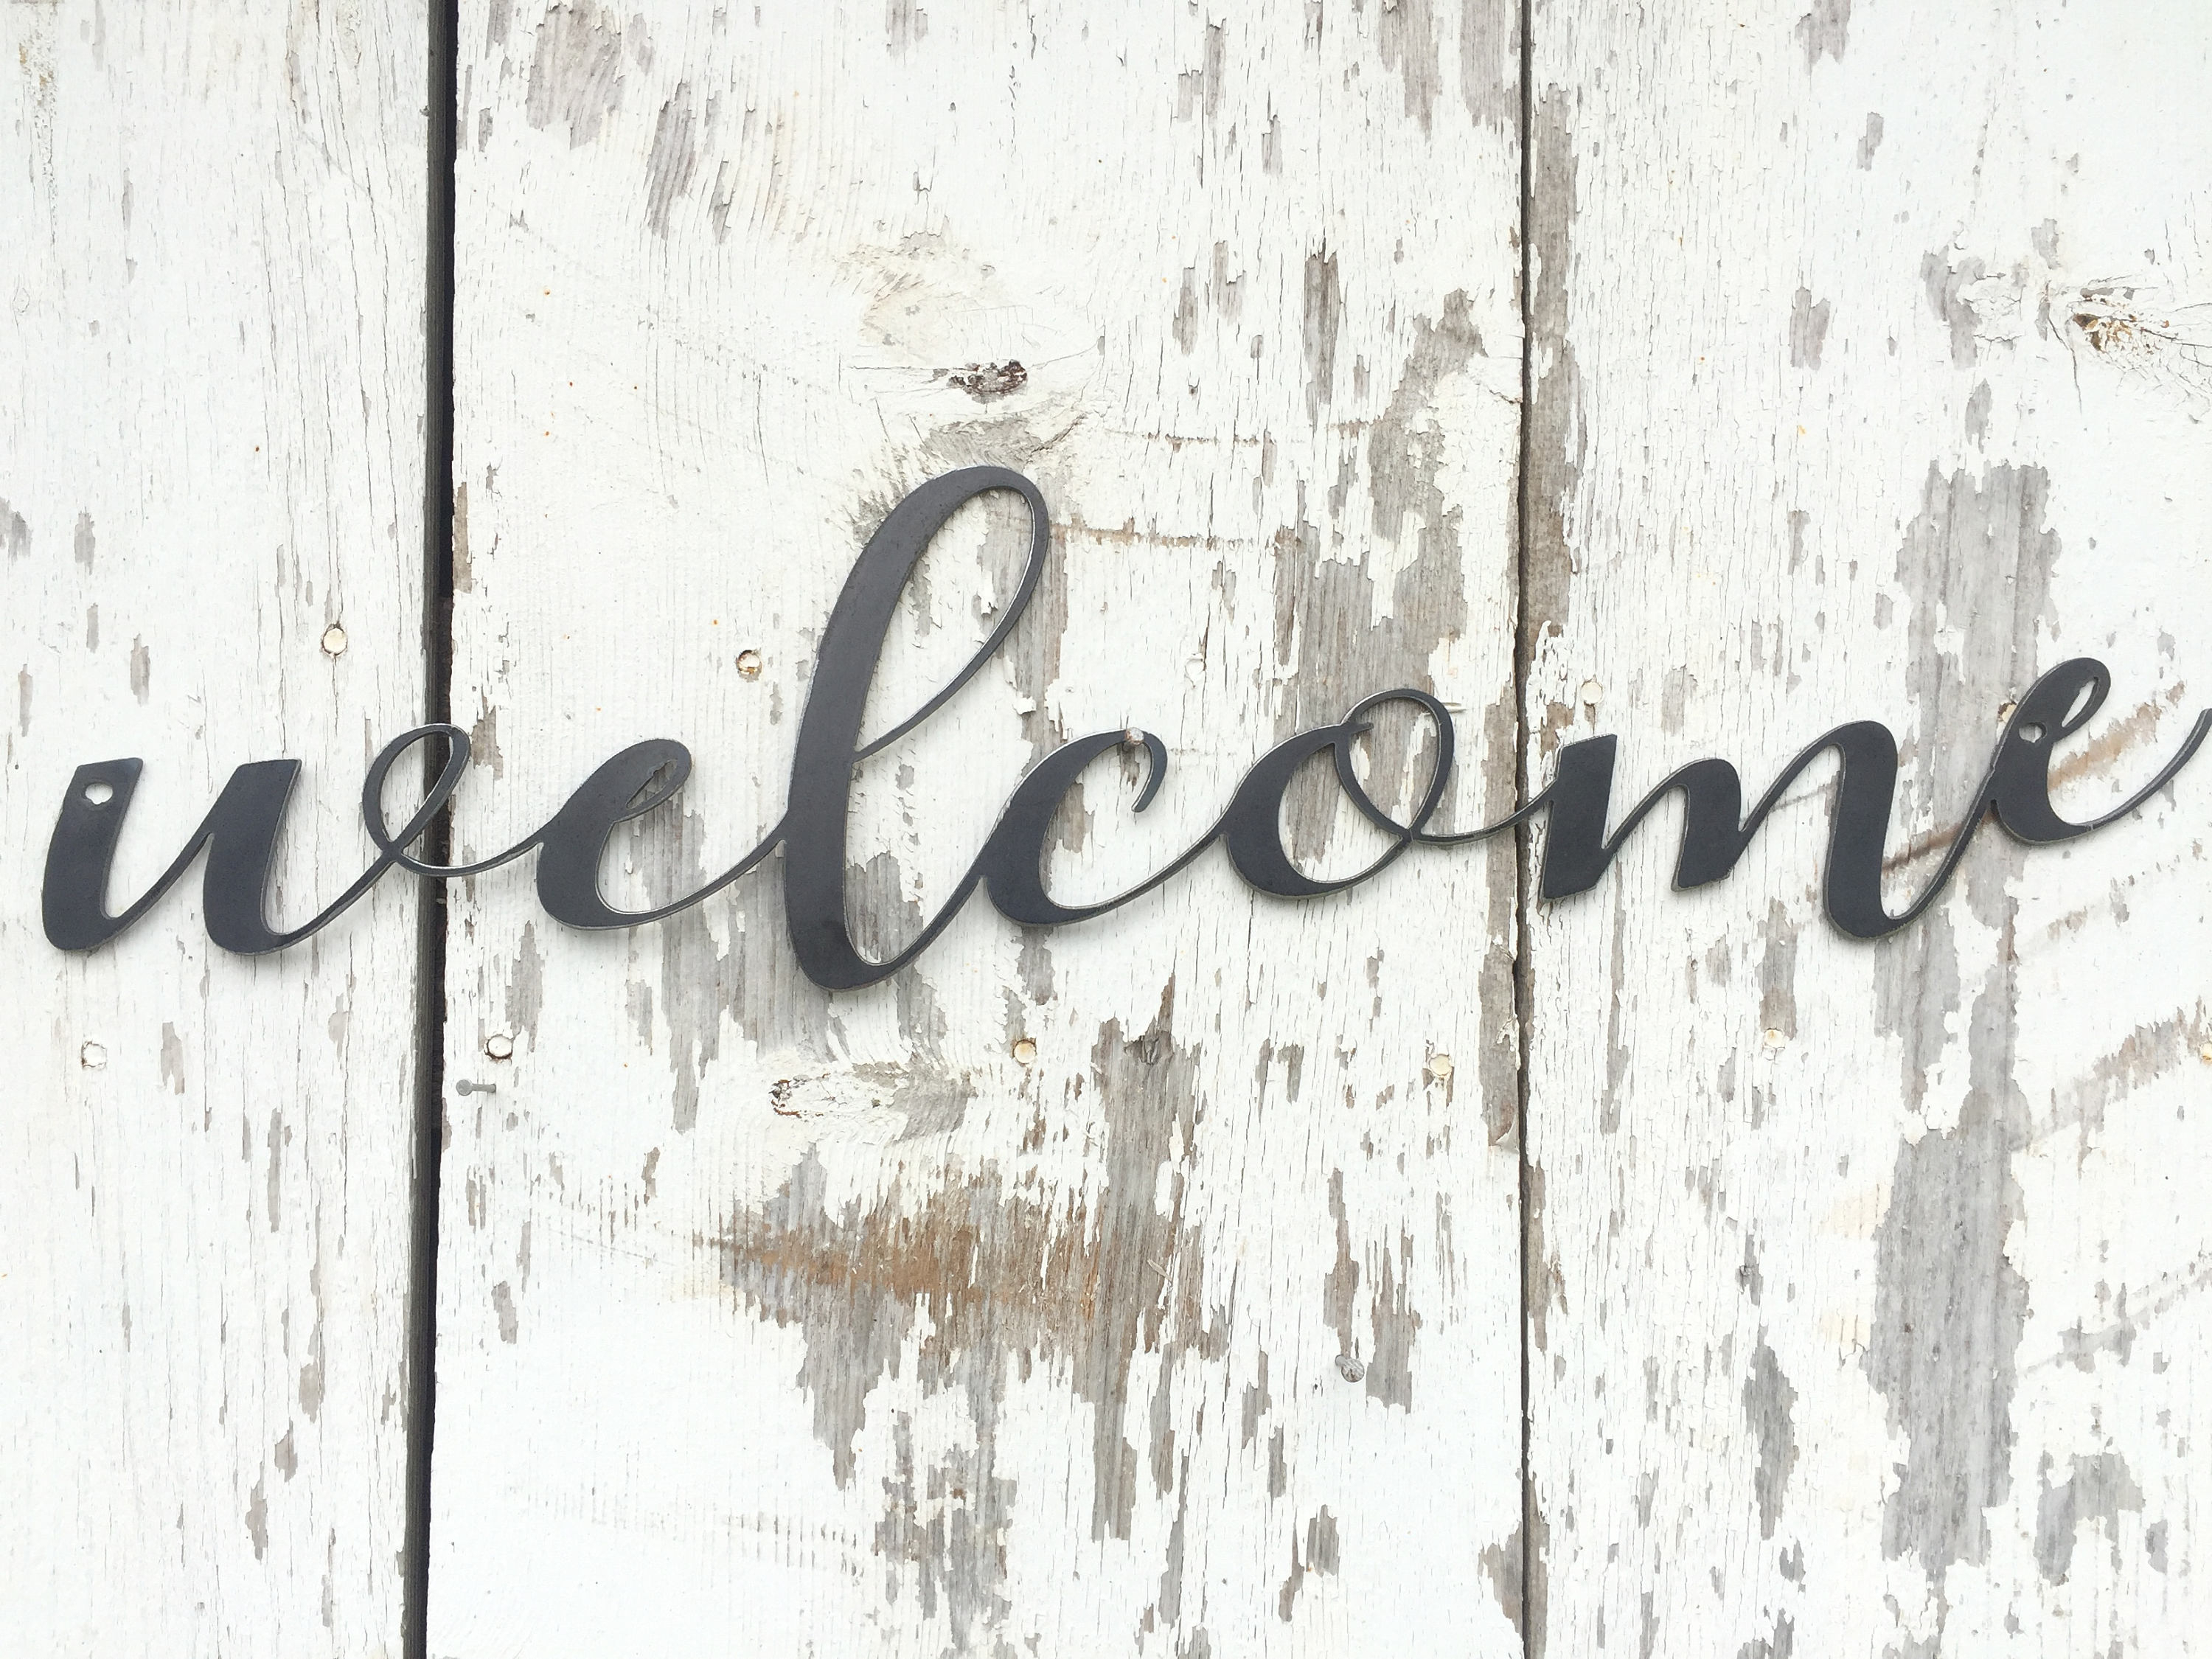 """Metal Welcome Sign - Metal Word - Metal Wall Art - Rustic Metal Word Art  Sign - Metal Sign - Welcome Wall Hanging - Industrial Home Decor regarding In-A-Word """"welcome"""" Wall Decor (Image 16 of 30)"""